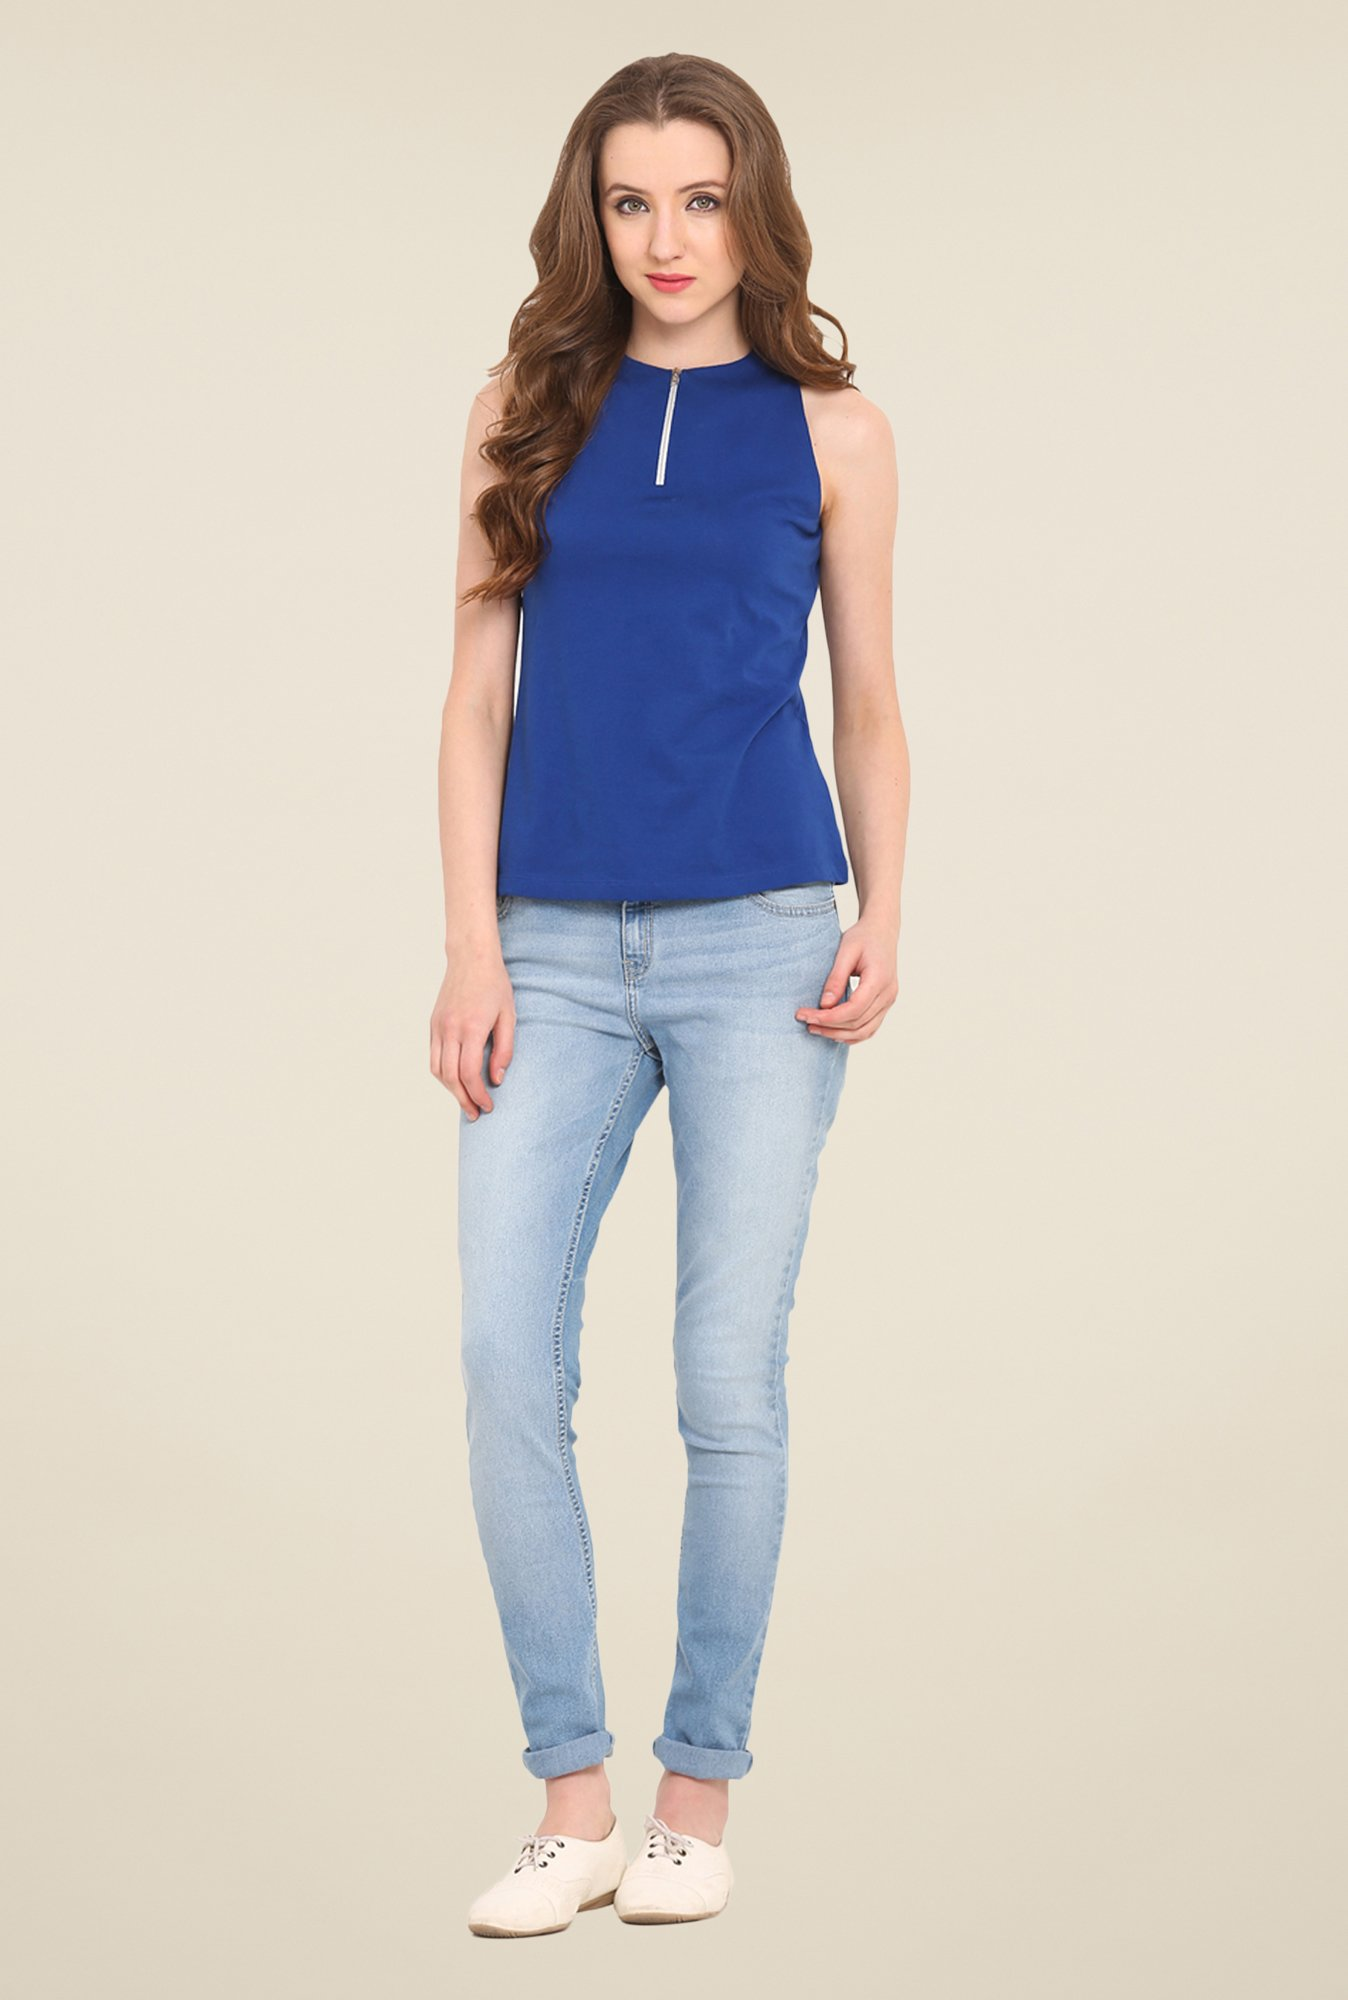 Saiesta Blue Solid Top